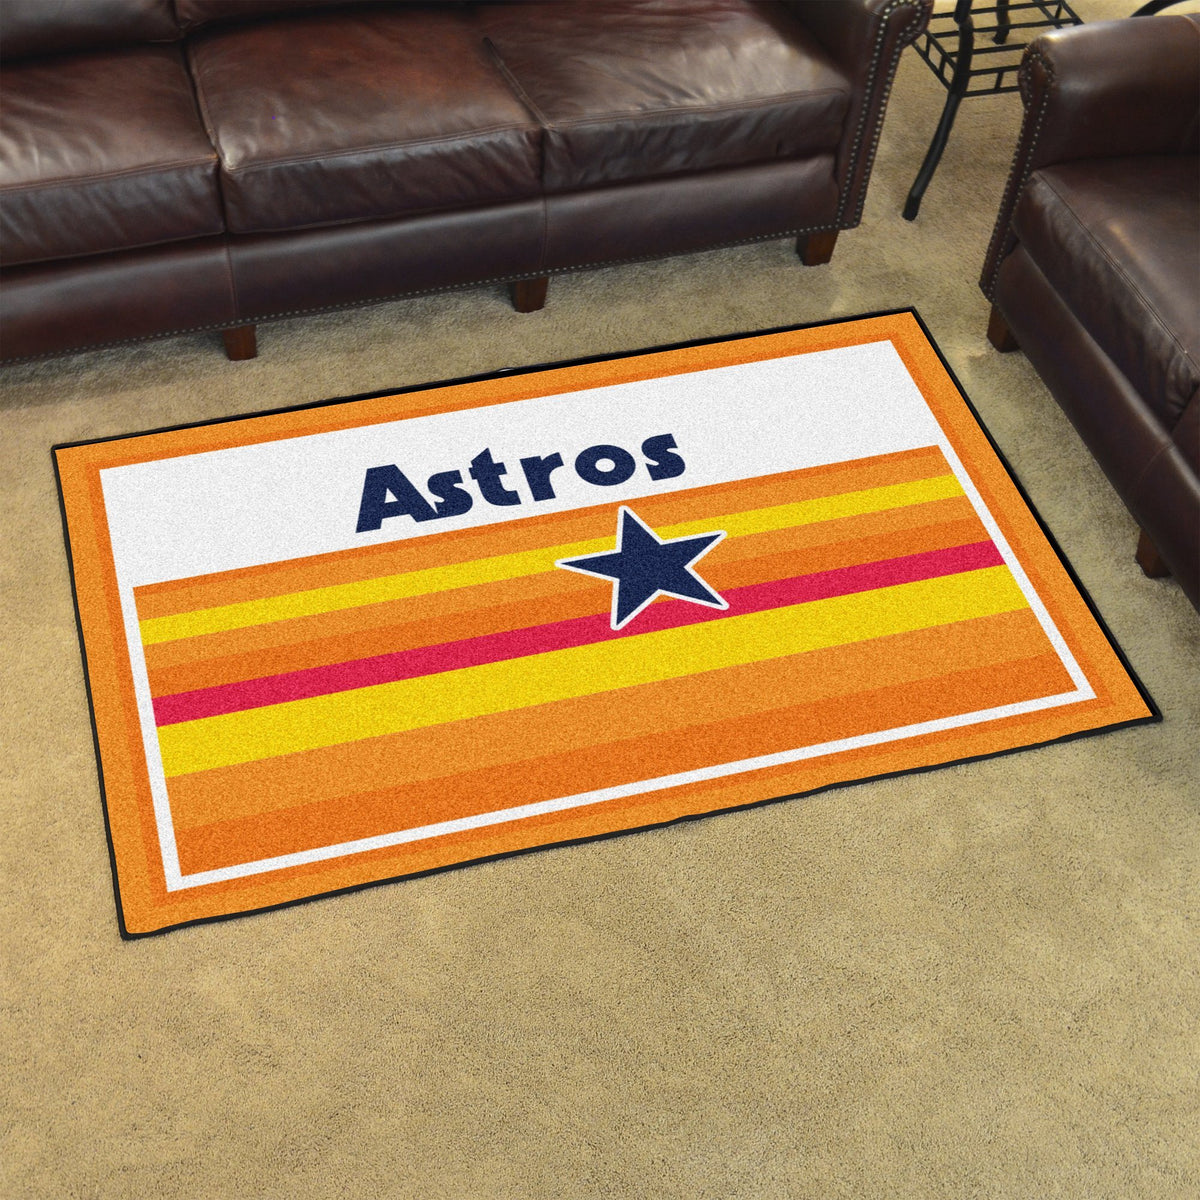 MLB Retro - 4' x 6' Rug MLB Retro Mats, Plush Rugs, 4x6 Rug, MLB, Home Fan Mats Houston Astros